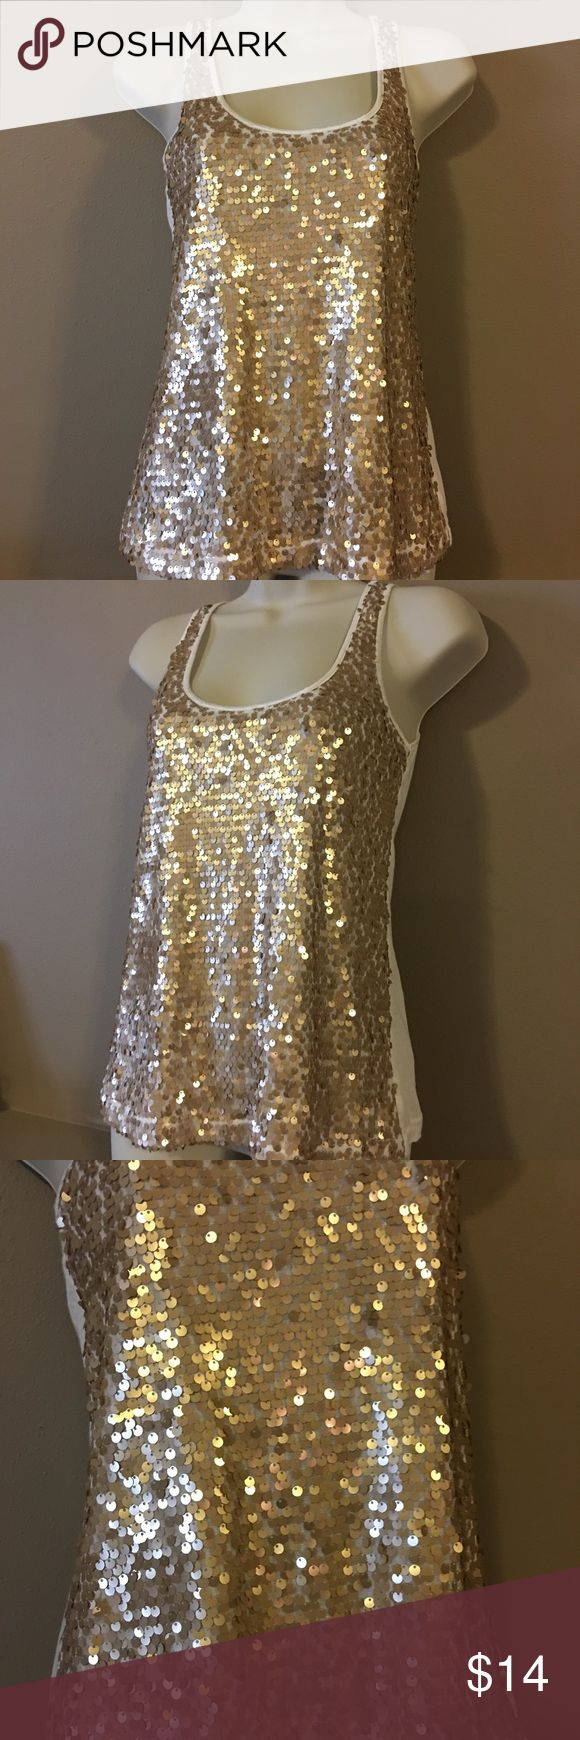 Express: Gold sequin tank top EUC: Gold sequin tank top. It would look great with a cardigan for the holidays! Express Tops Tank Tops